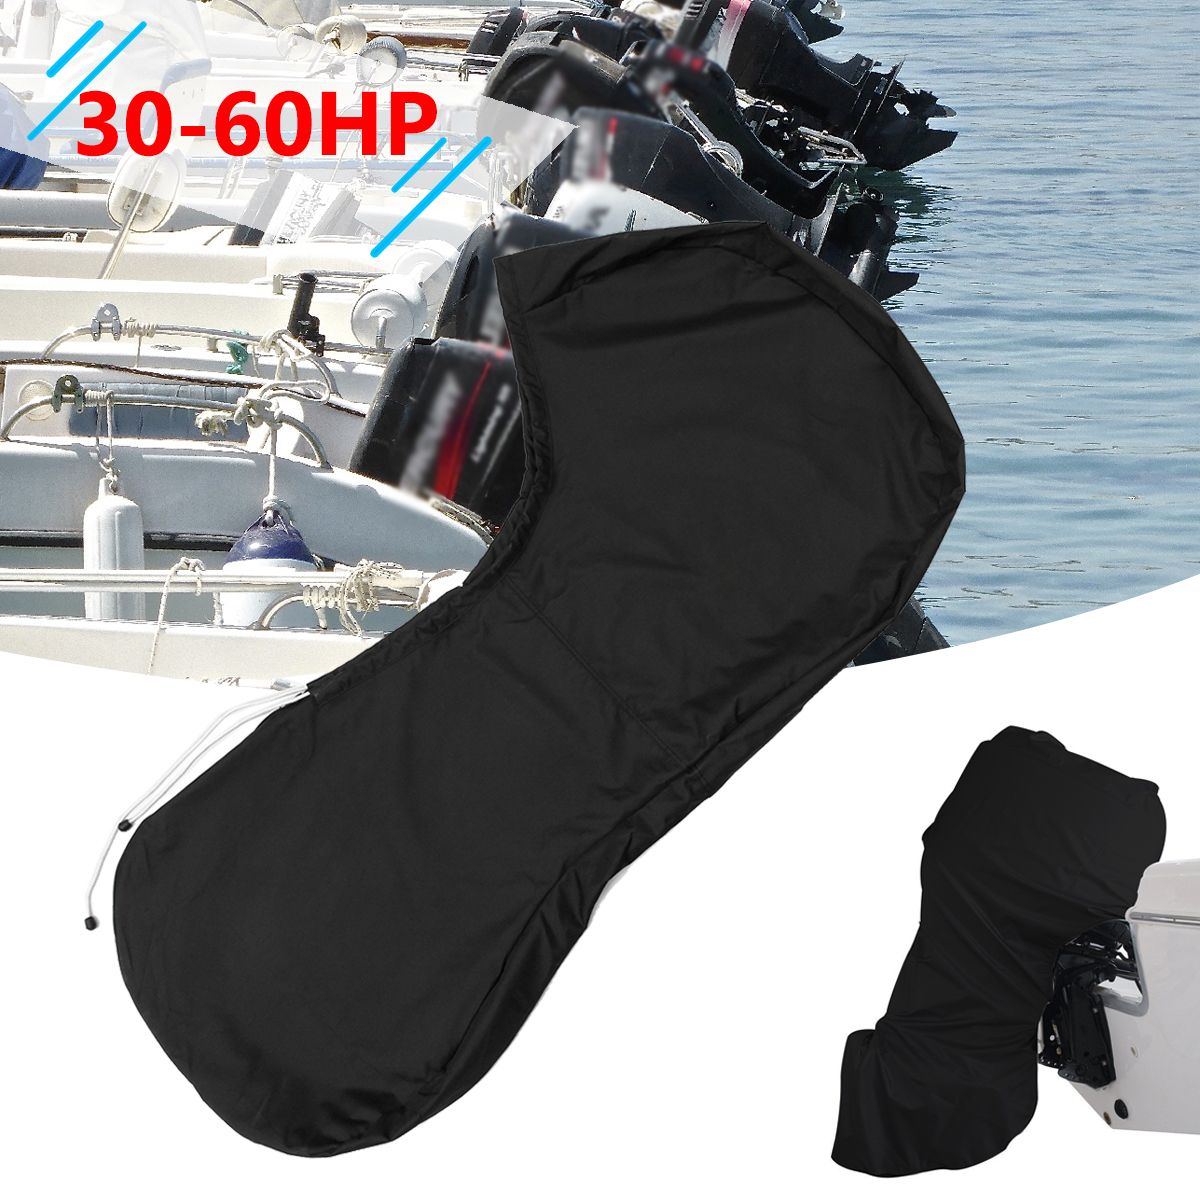 600D 30-60HP Black Boat Full Engine Cover Outboard Protector For 30-60 Hose Power Motor Waterproof